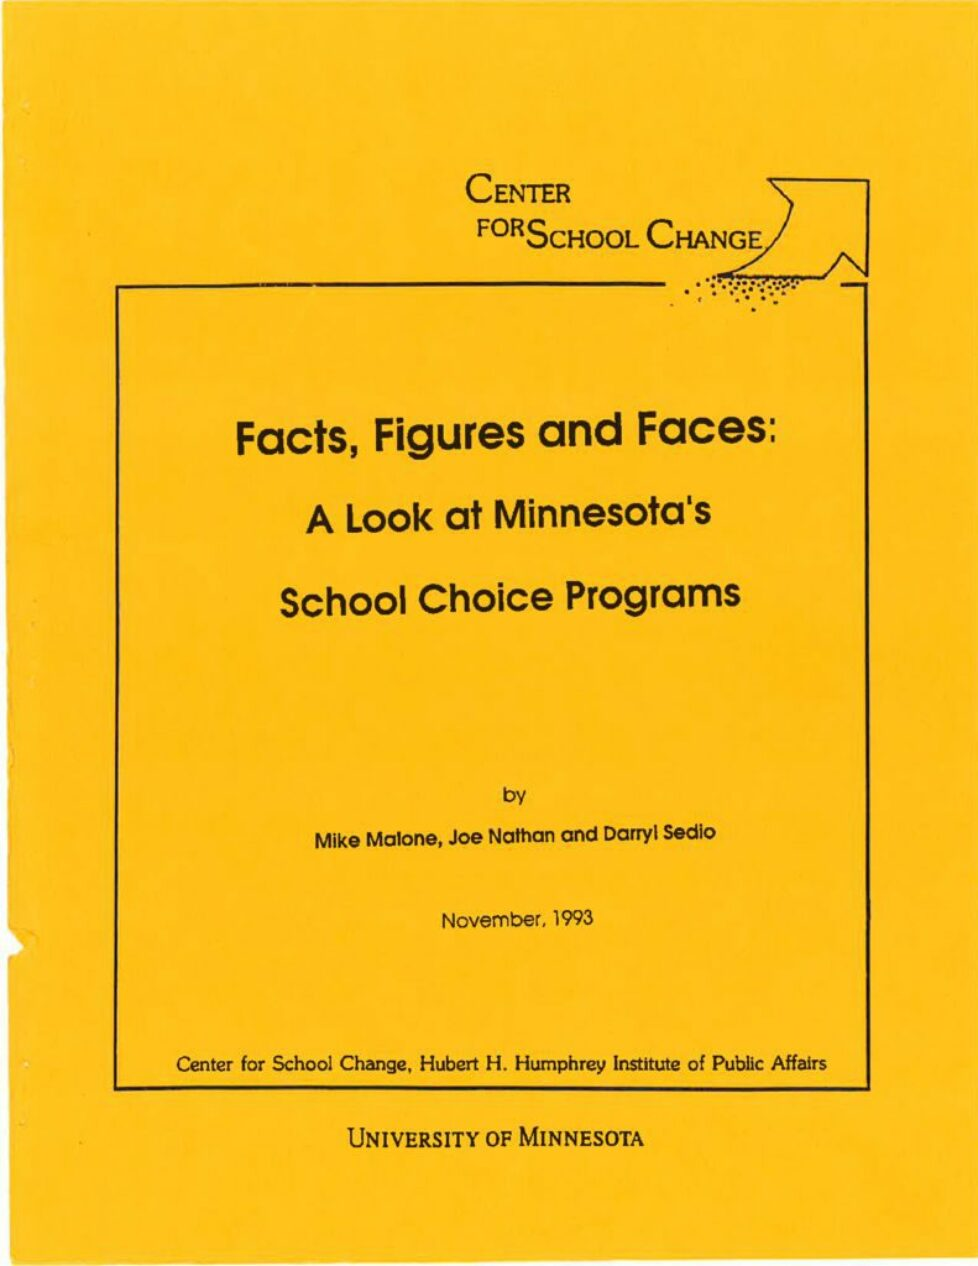 thumbnail of Facts, Figures and Faces-A Look at Minnesota's School Choice Programs